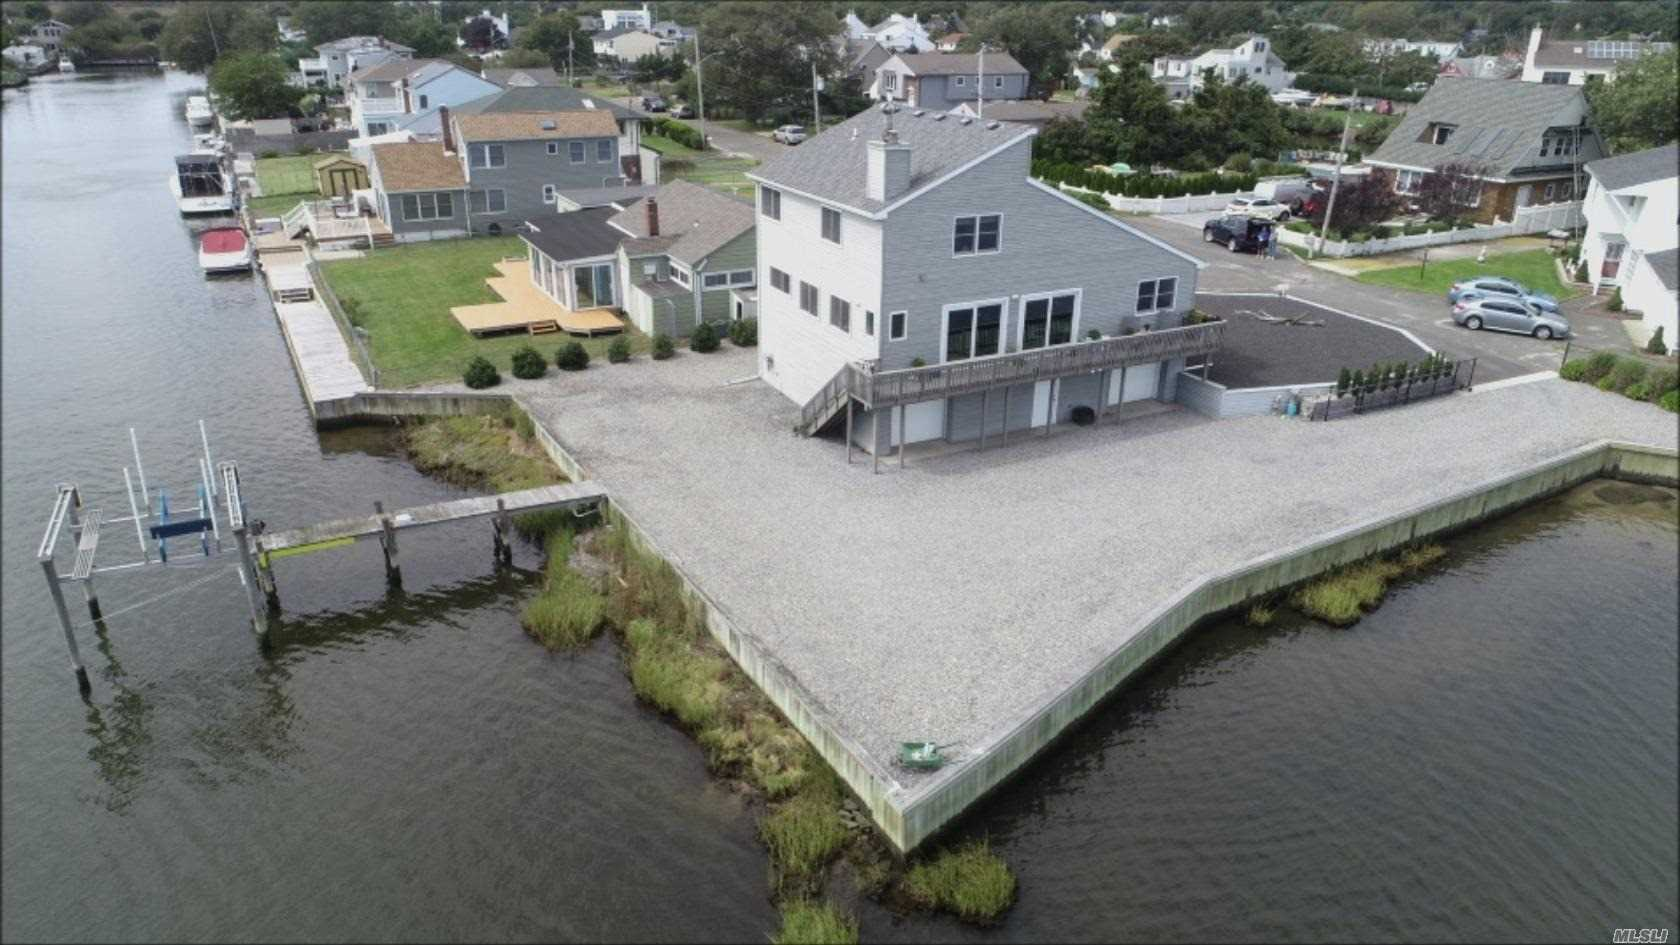 Wake Up Everyday To Unobstructed Views Of The Great South Bay, Open Floor Plan Views From Every Room, 255 Feet Of Bulkhead With A 30' Pier And Boat Lift. Enjoy Sunrises And Sunsets In This Elegant Open And Airy Layout, 200 Amp Service, Central Vac, Two 275Gal Oil Tanks, Superb Quality And Just Remodeled.